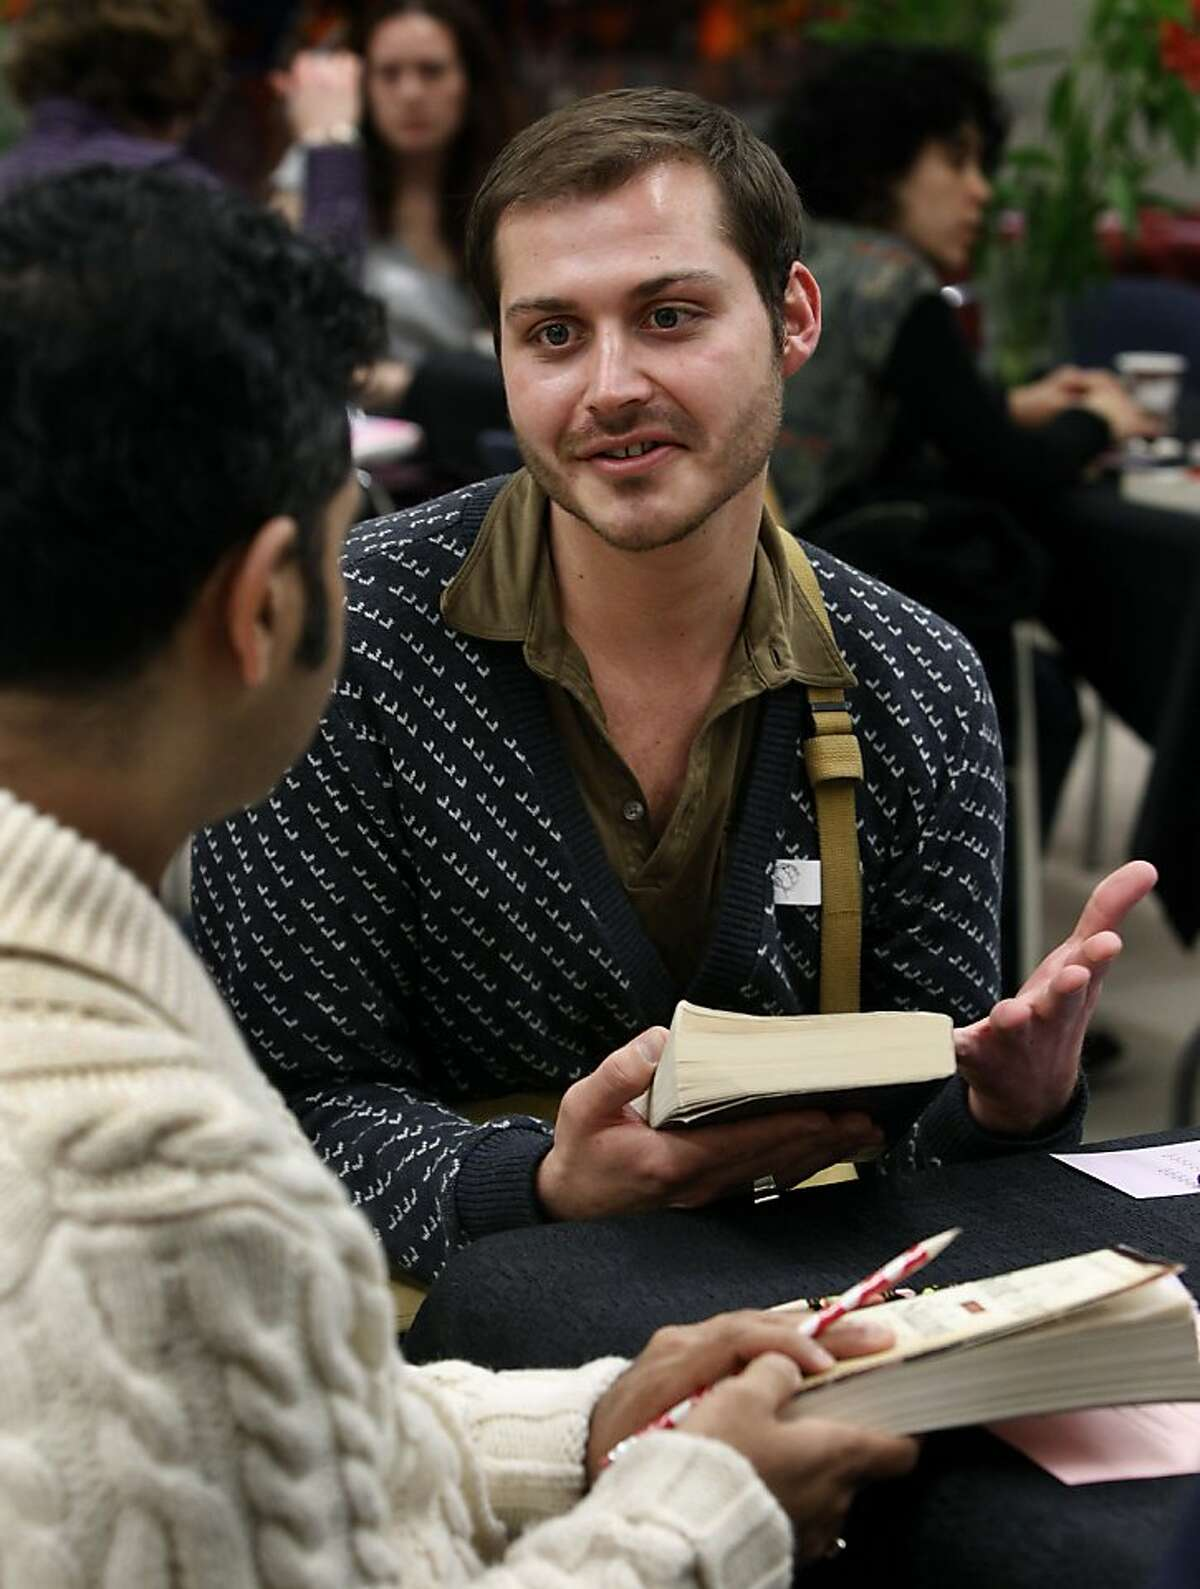 Blake Love meets Ameet Kamath (left) at an LGBT speed dating event at the Main Library in San Francisco, Calif., on Wednesday, Feb. 2, 2011. Participants were encouraged to bring their favorite book as a conversation starter.